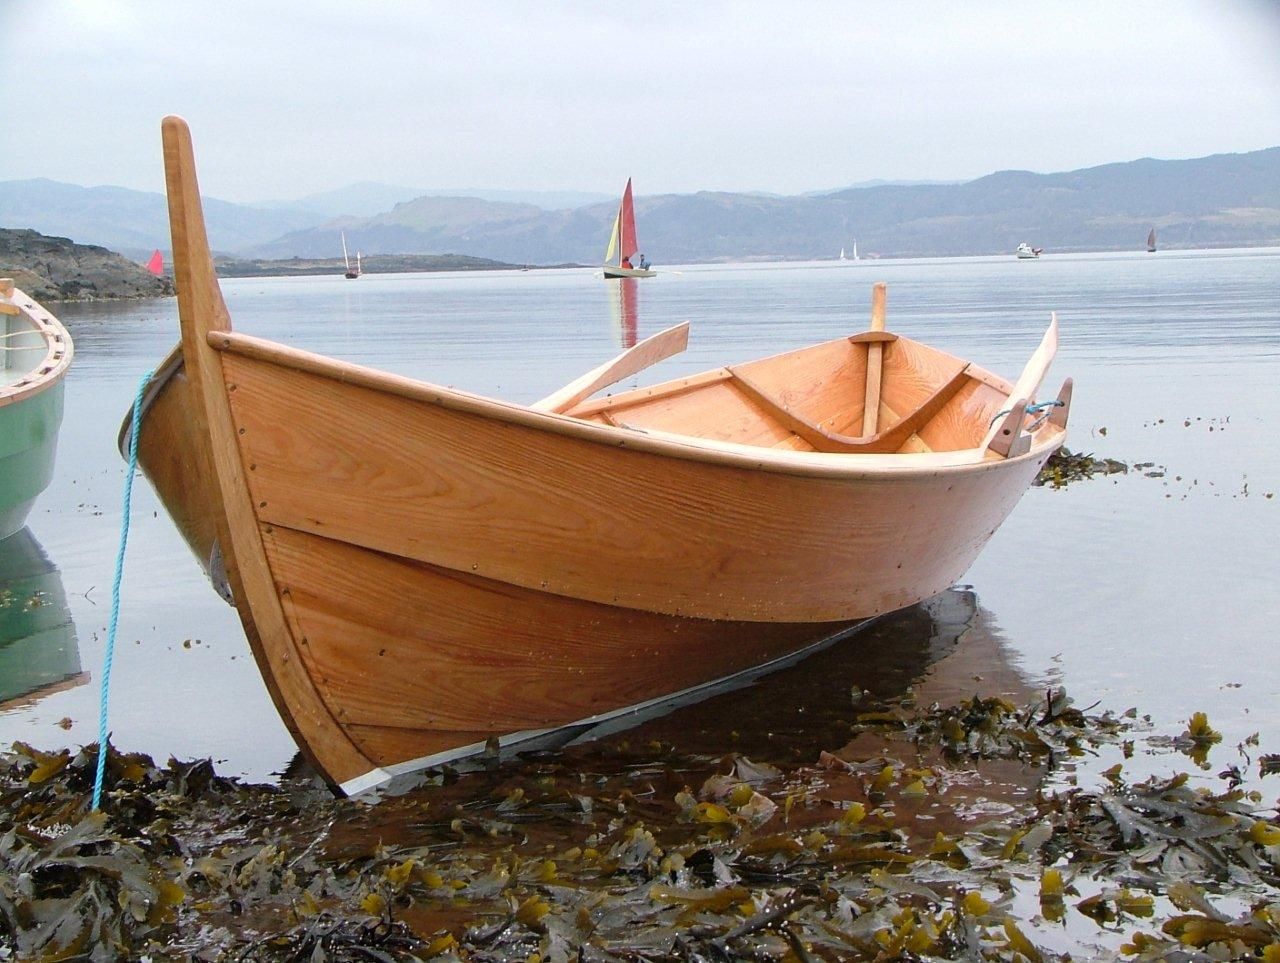 WBTA - Welcome to the Wooden Boatbuilder's Trade Association